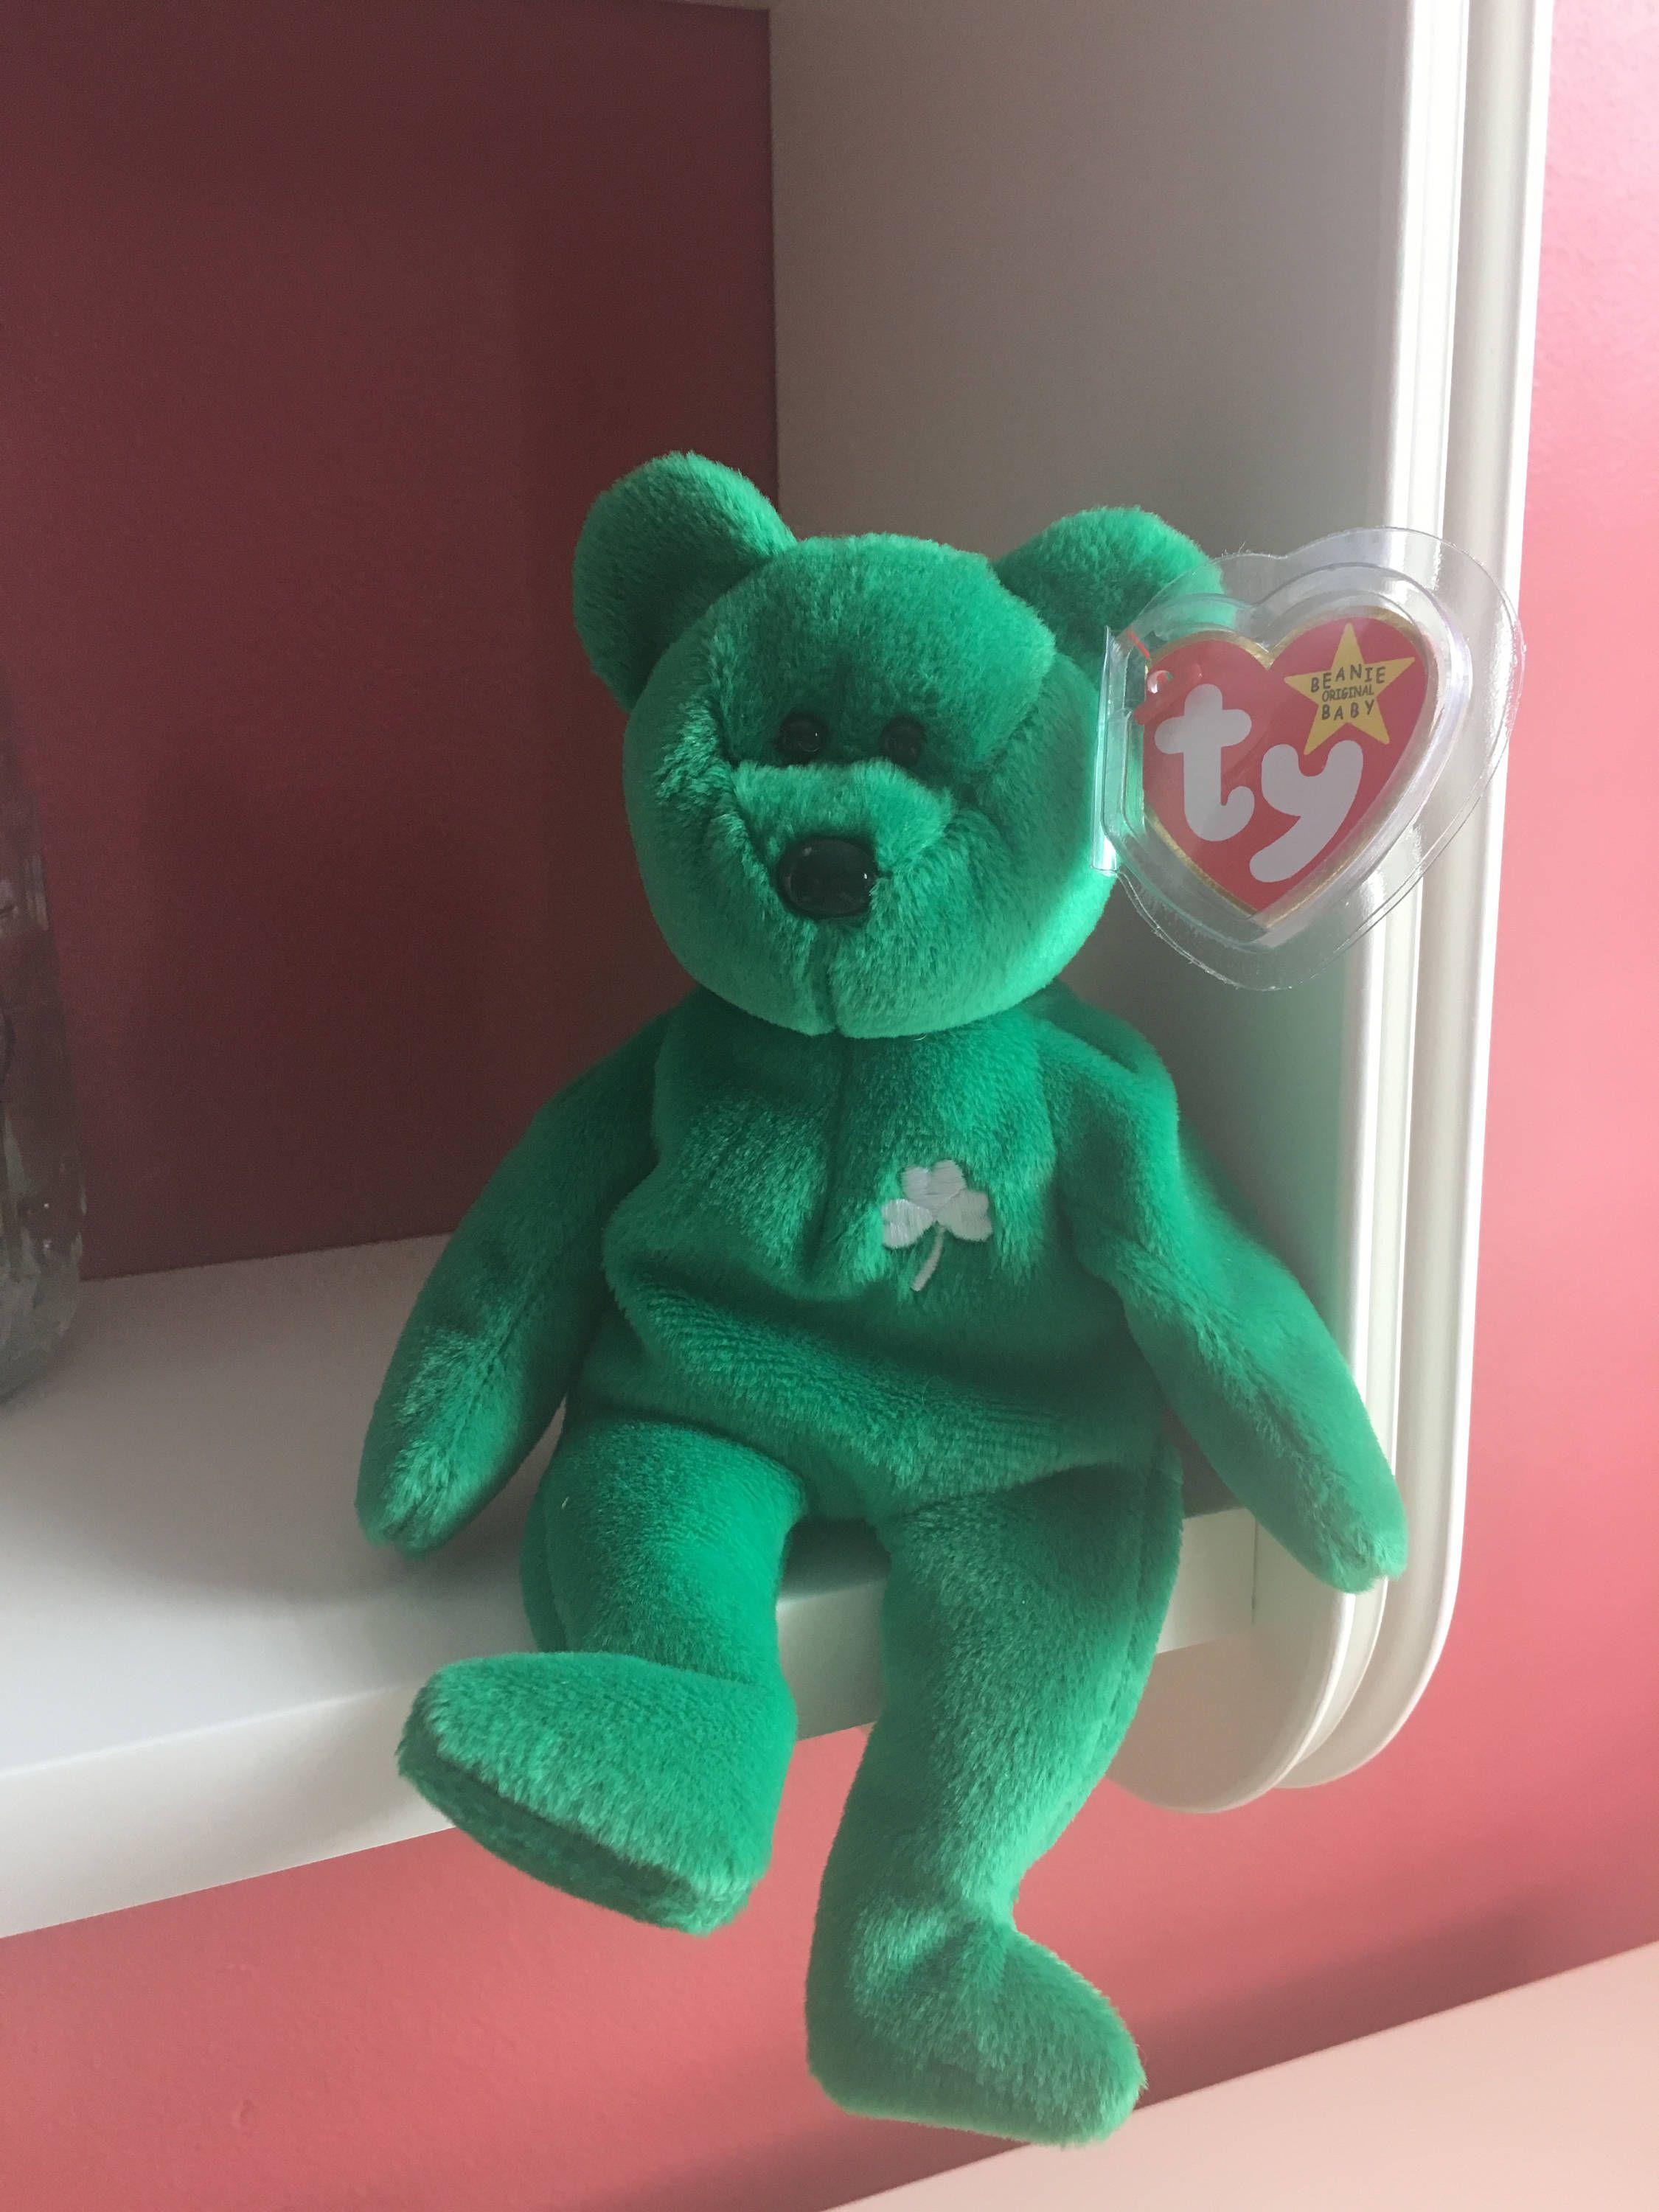 Mint Condition Rare Retired Irish Erin Teddy Bear Ty Beanie Baby with Mint  Tags  ab1c8e73e8e1